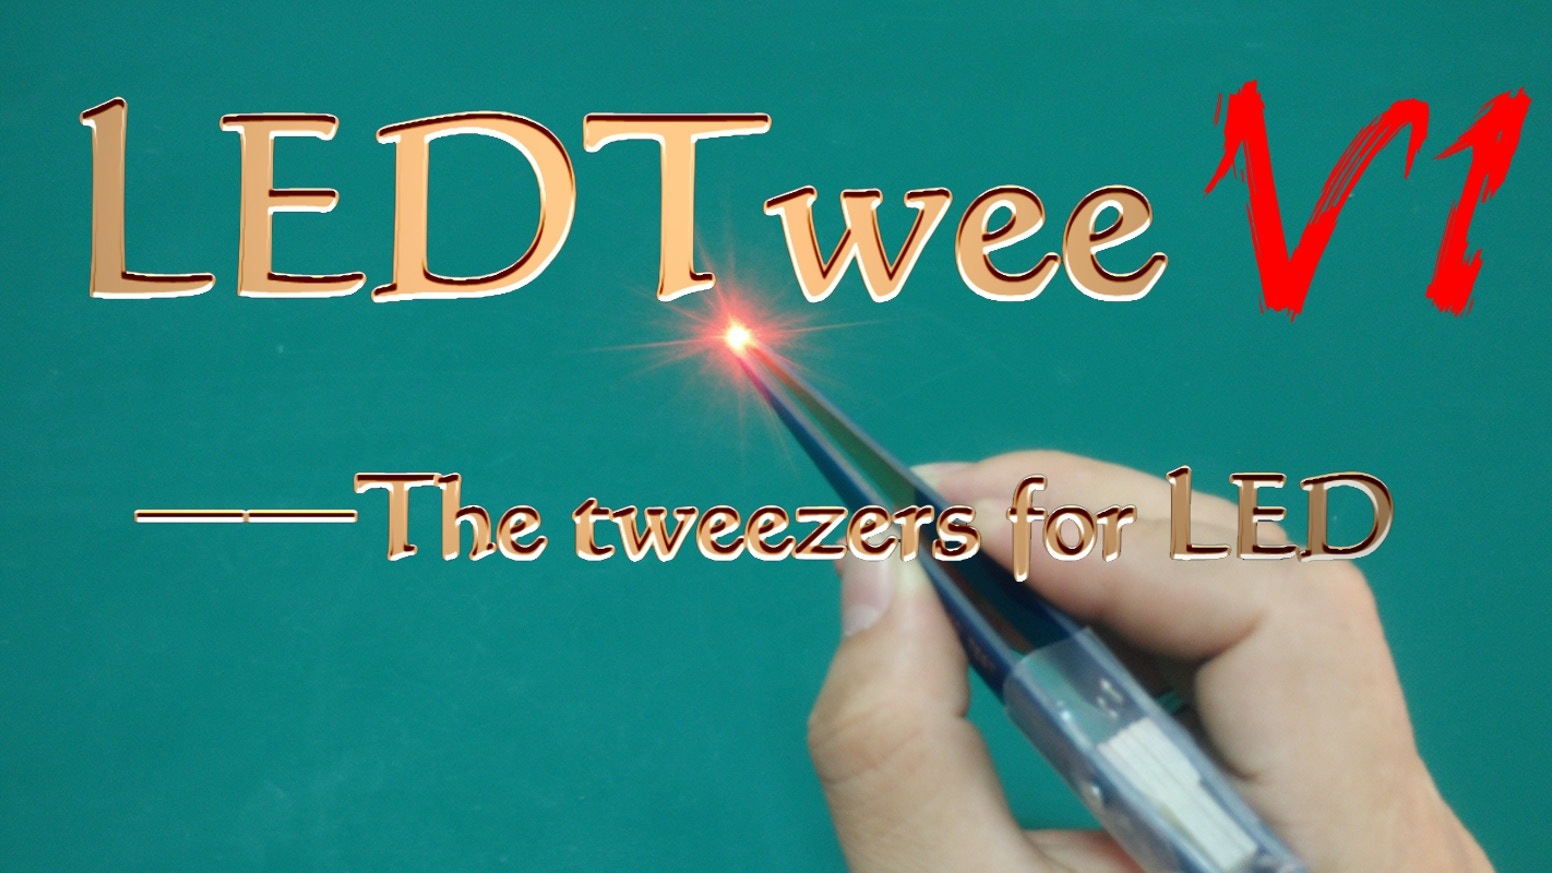 LEDTwee is the Tweezers easy  and efficiet to test LED and used to check anysize and color LED or LED Module.You should have one!!